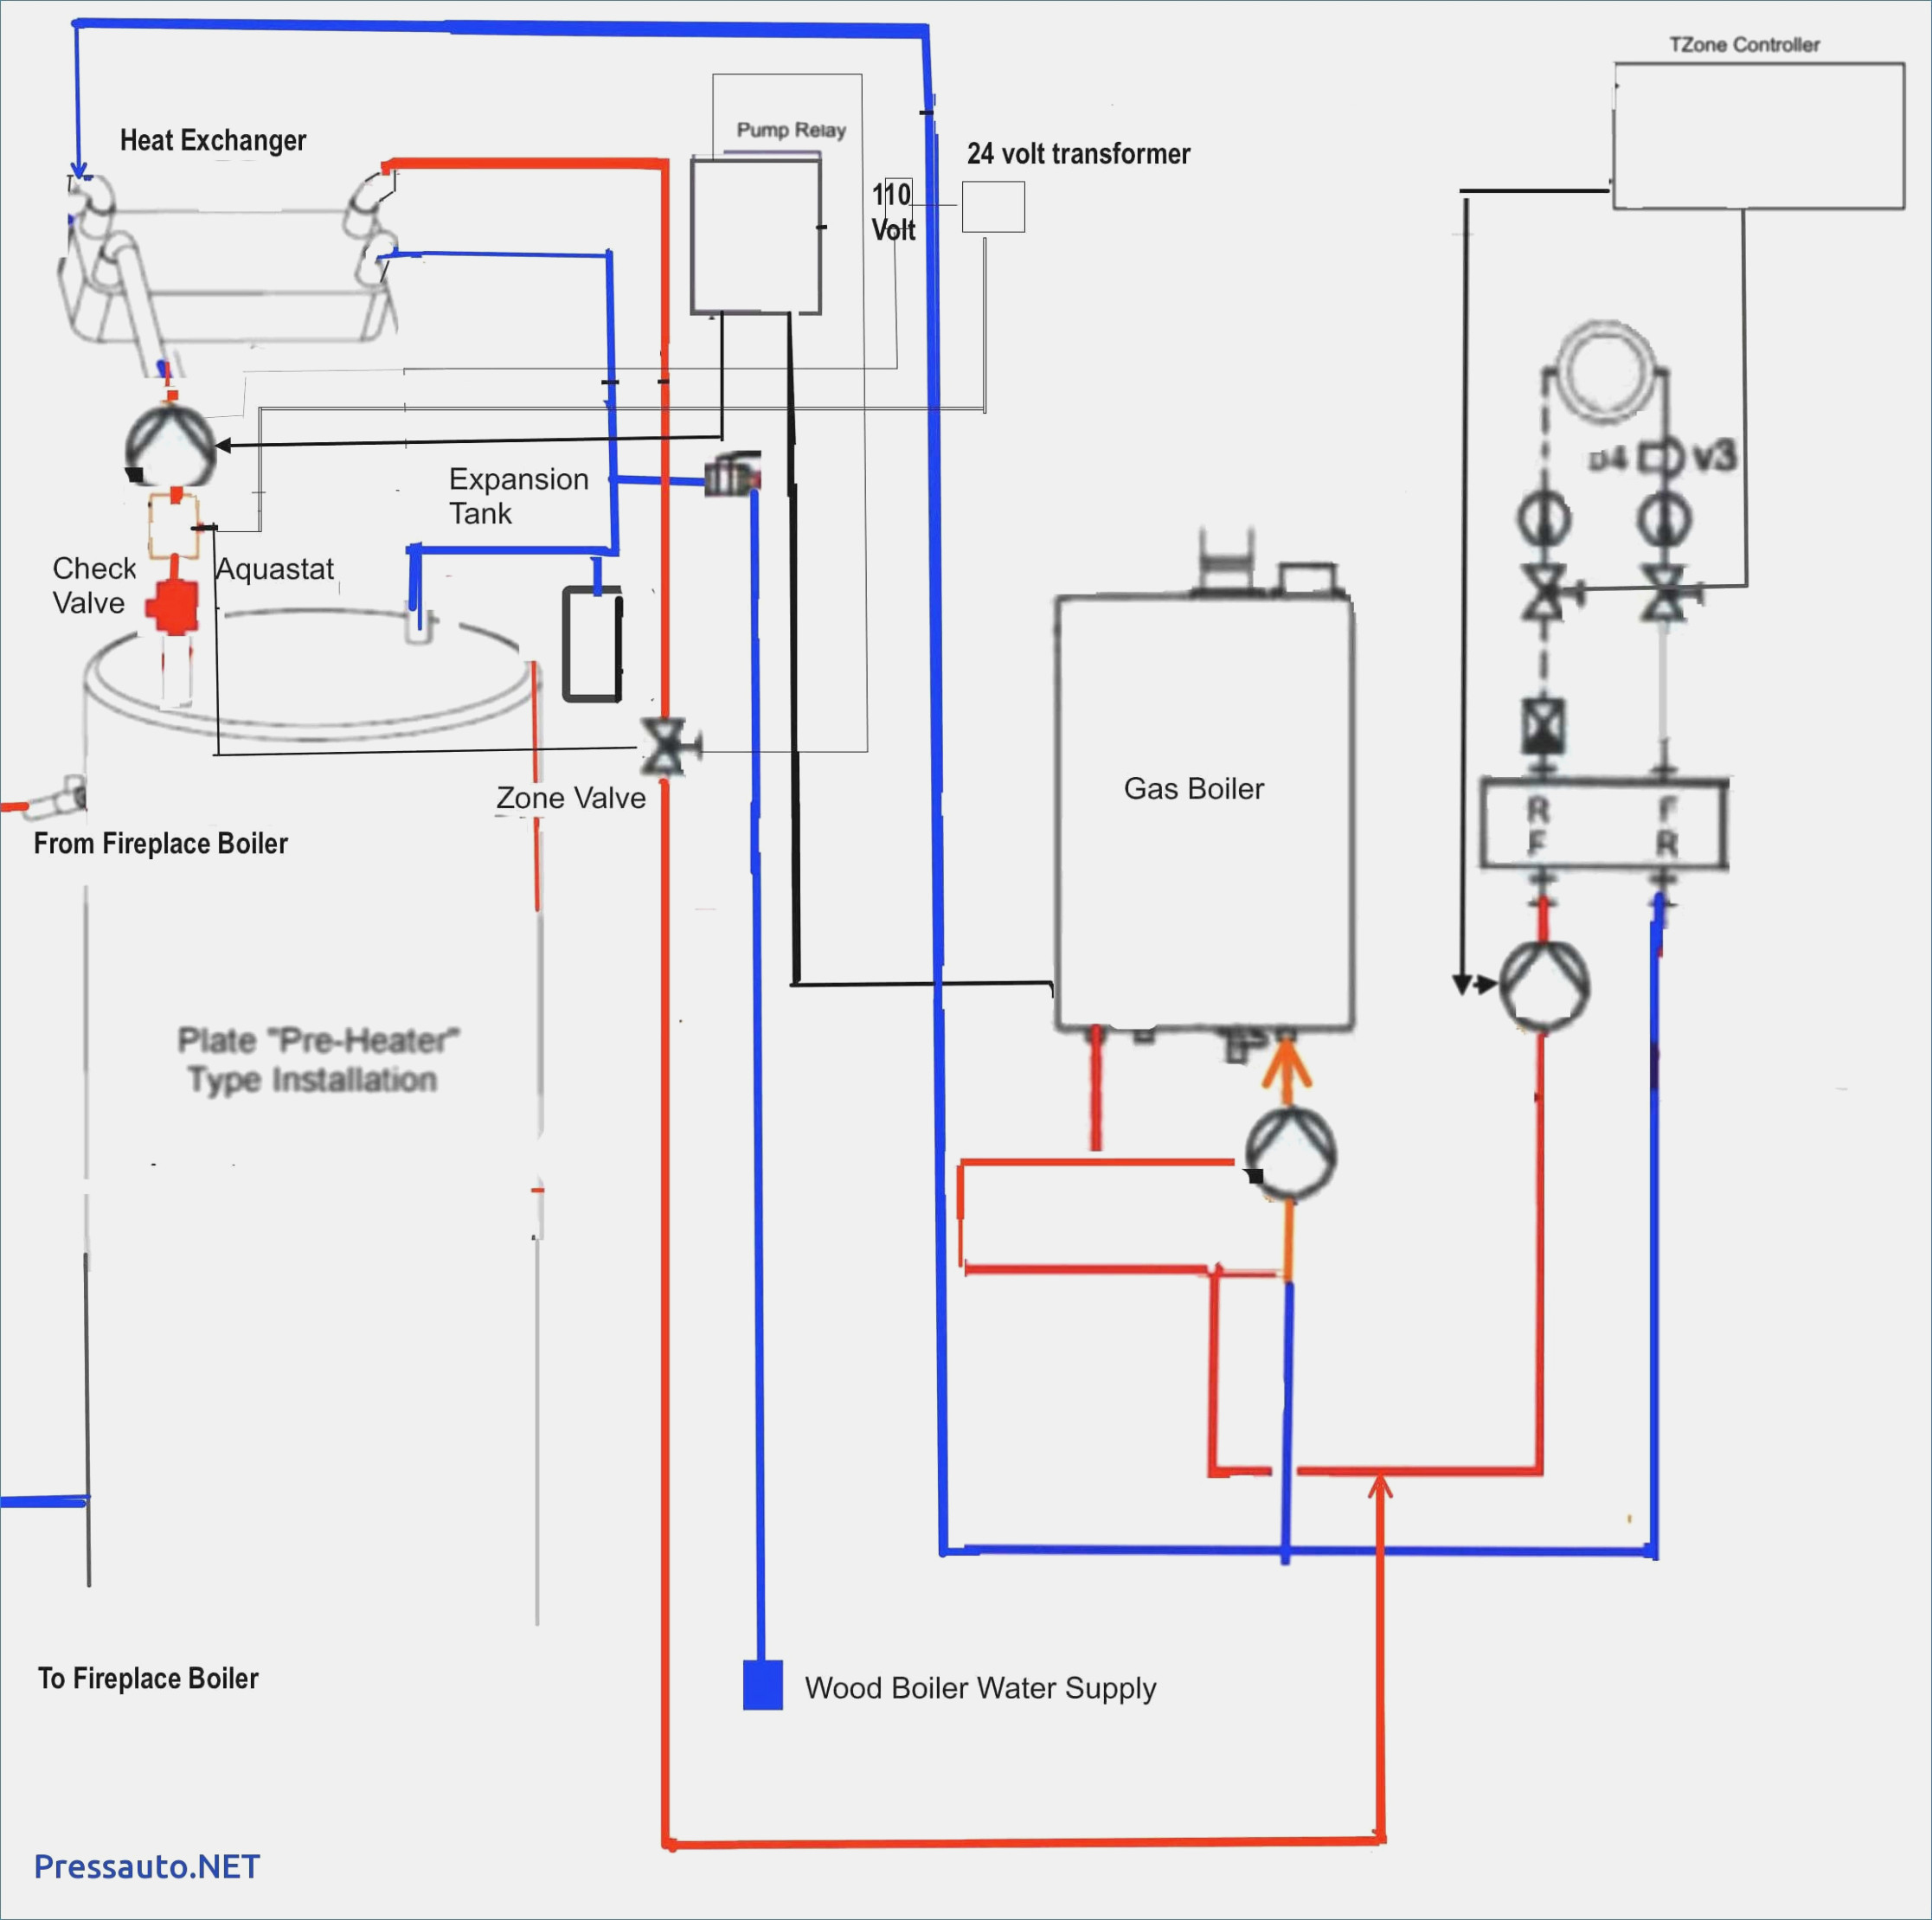 Boiler Control Wiring Diagram Honeywell 8124 - Online Wiring Diagram - Nest Wiring Diagram From 8124 Aquastat And 24V Transformer